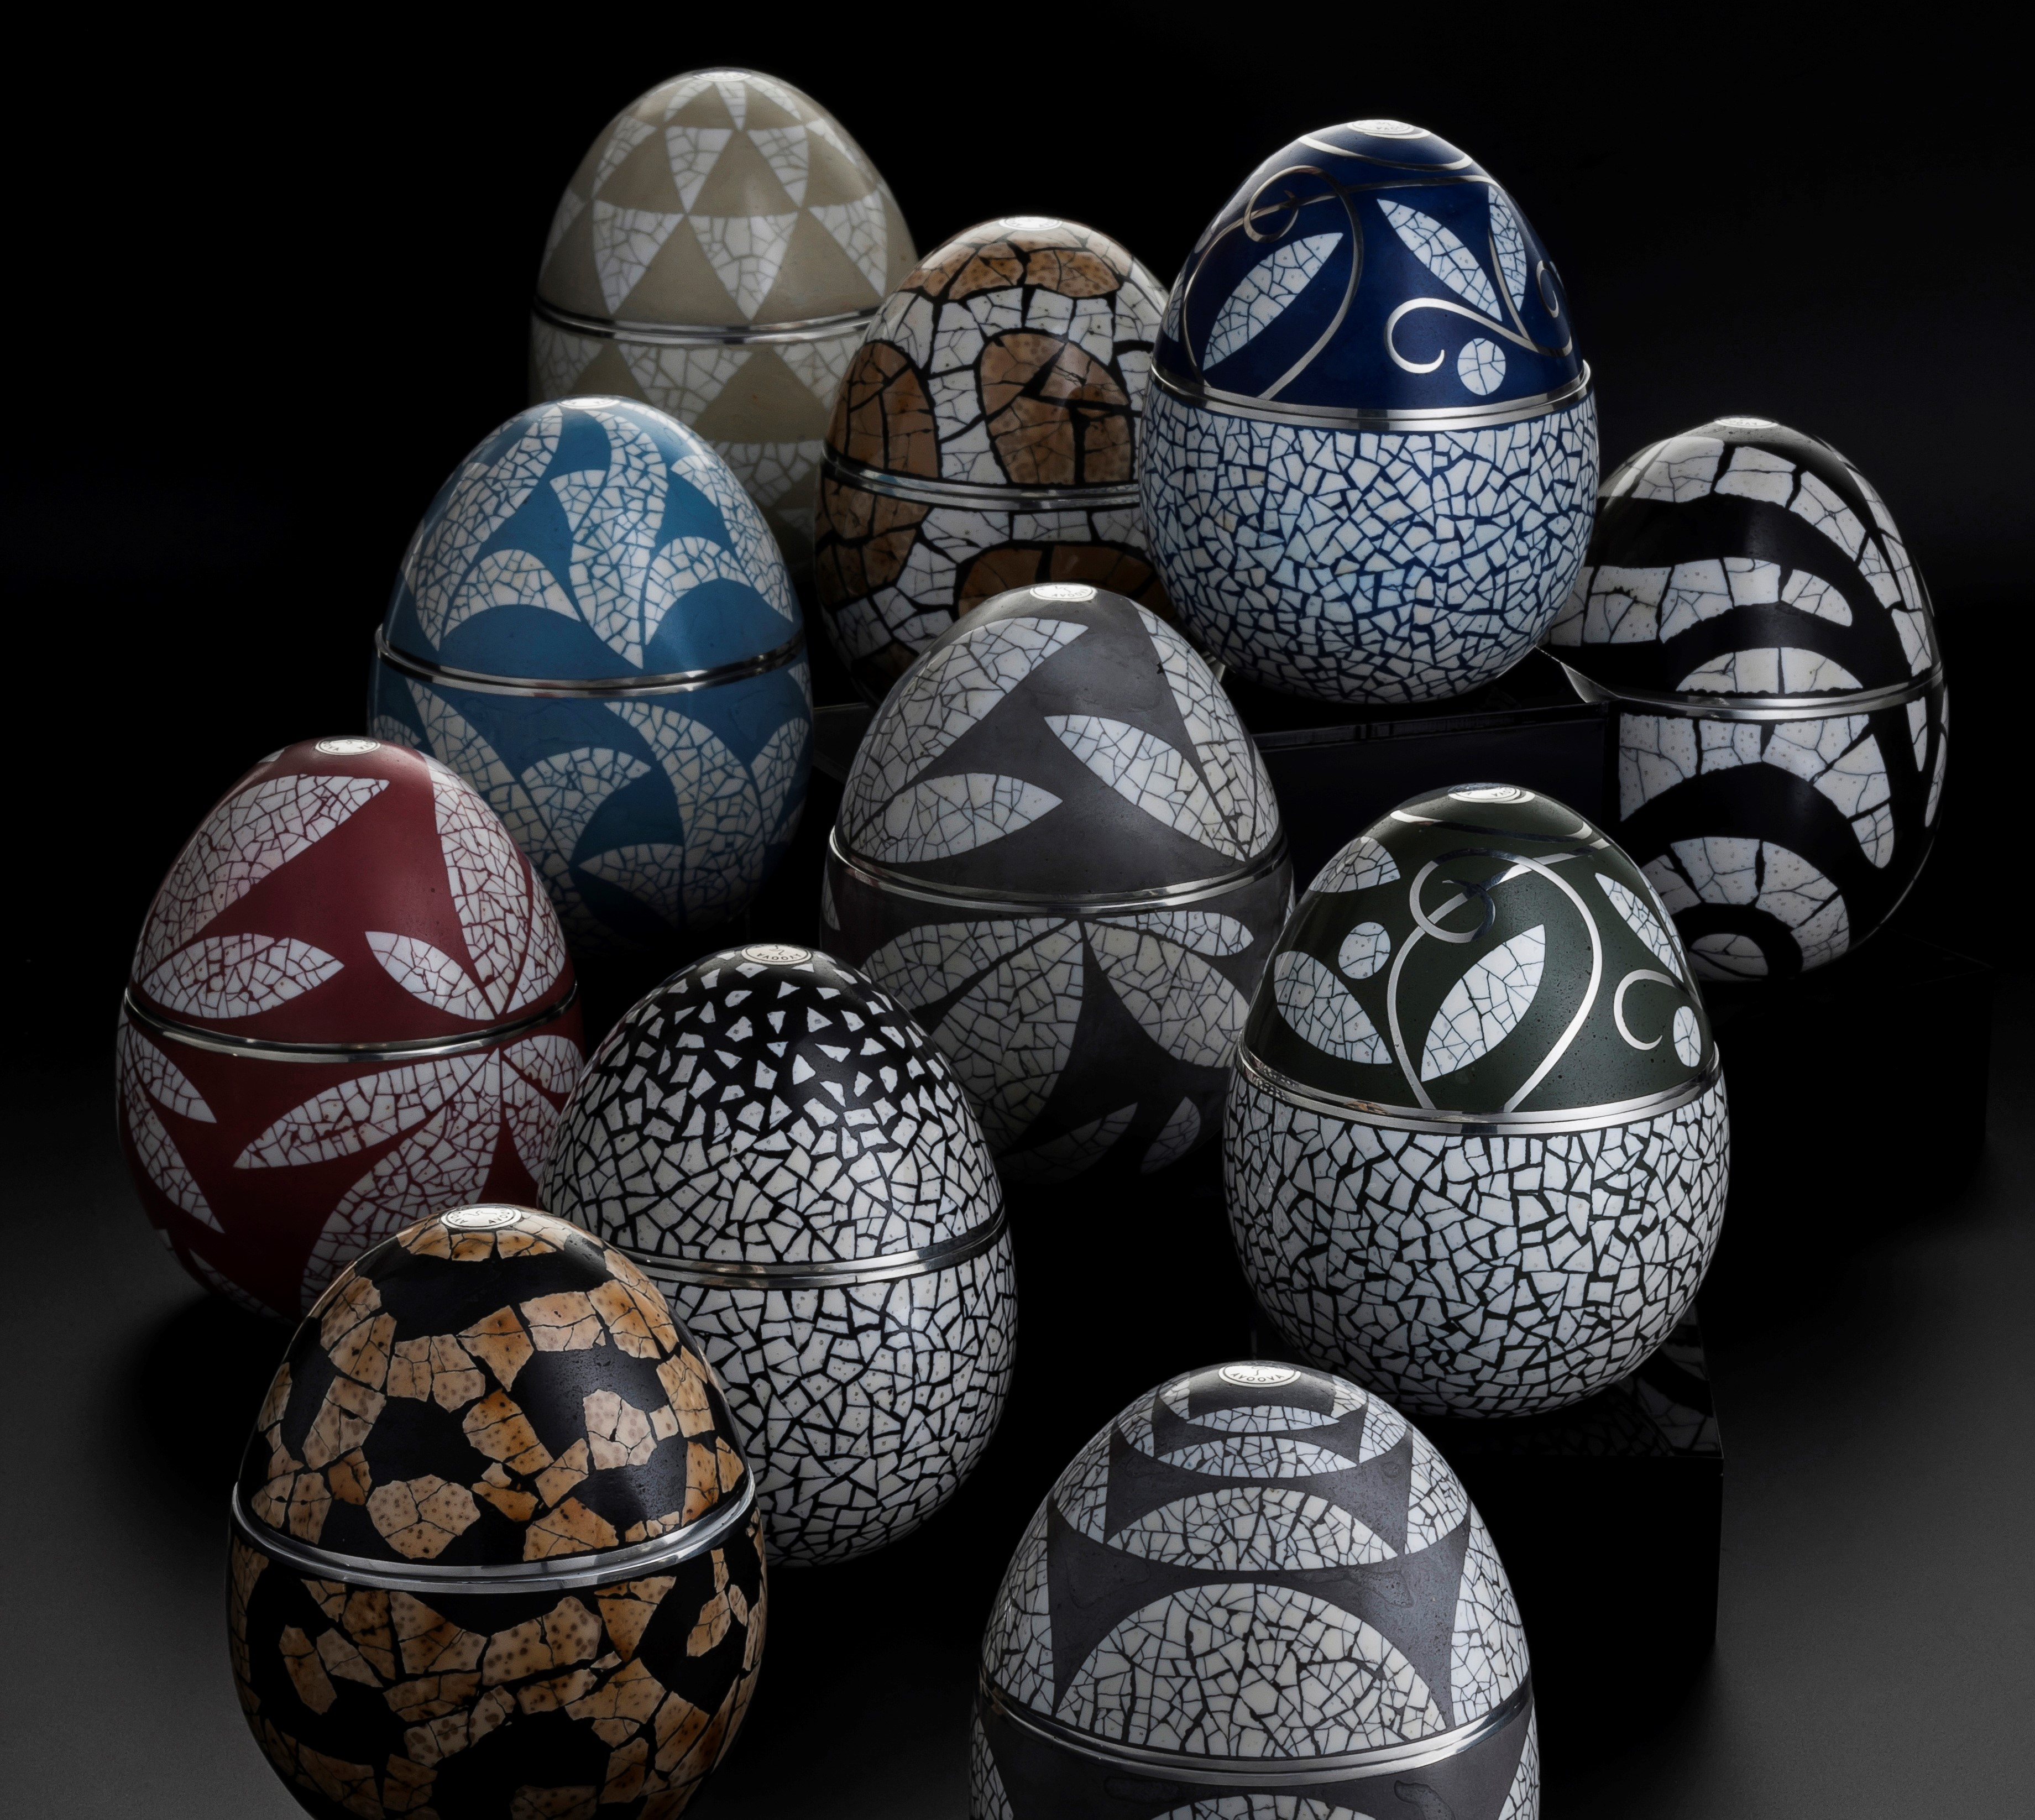 The AVOOVA Egg Collection